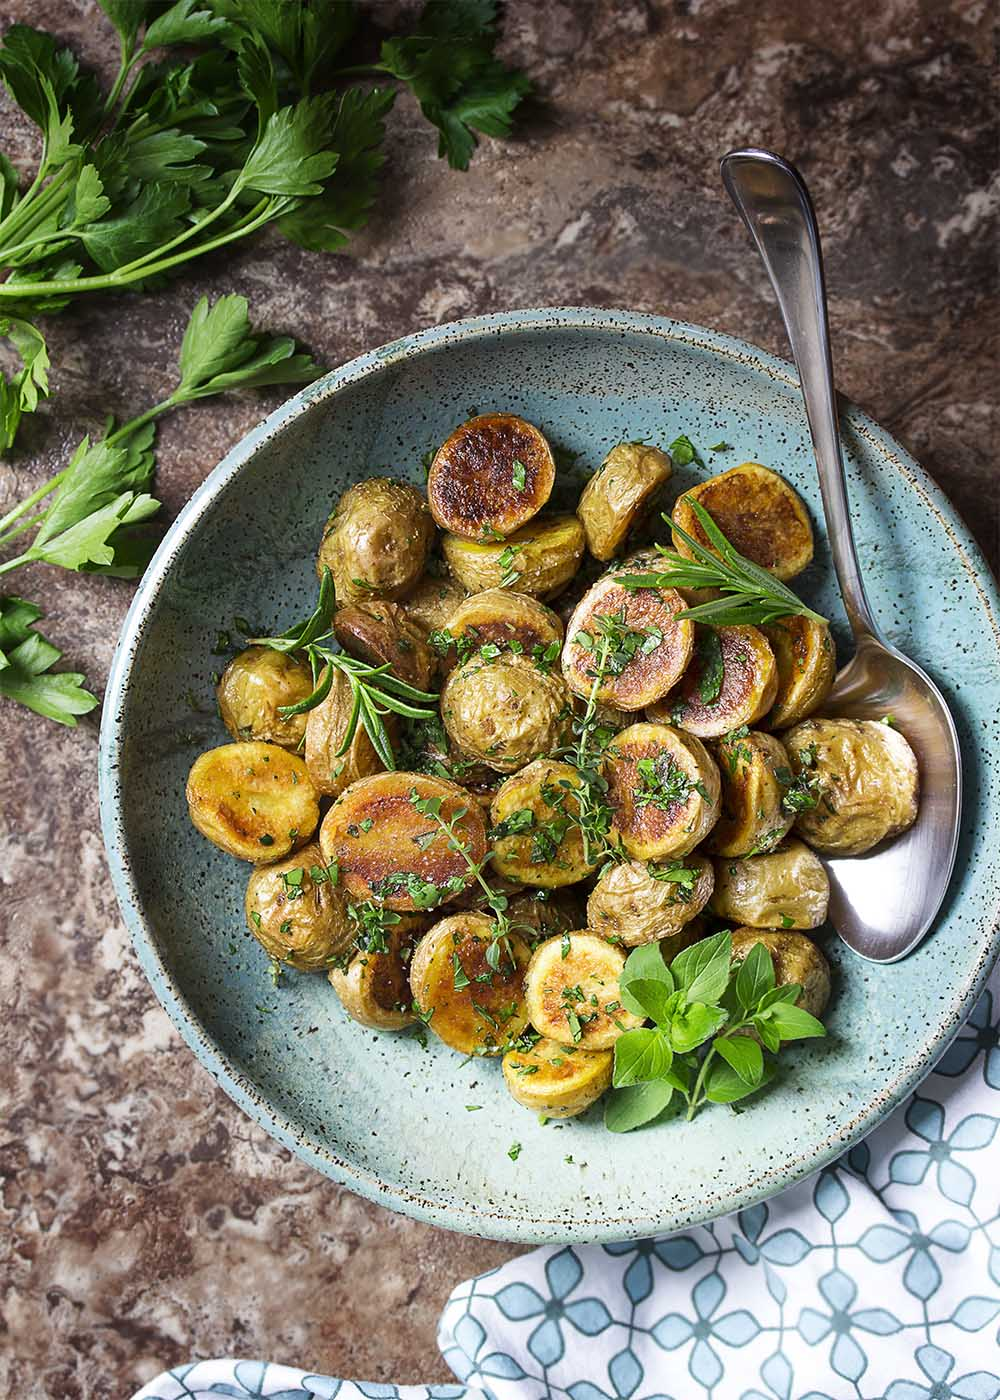 Top view of a serving dish of herb roasted potatoes with fresh herbs scattered about and a large serving spoon.